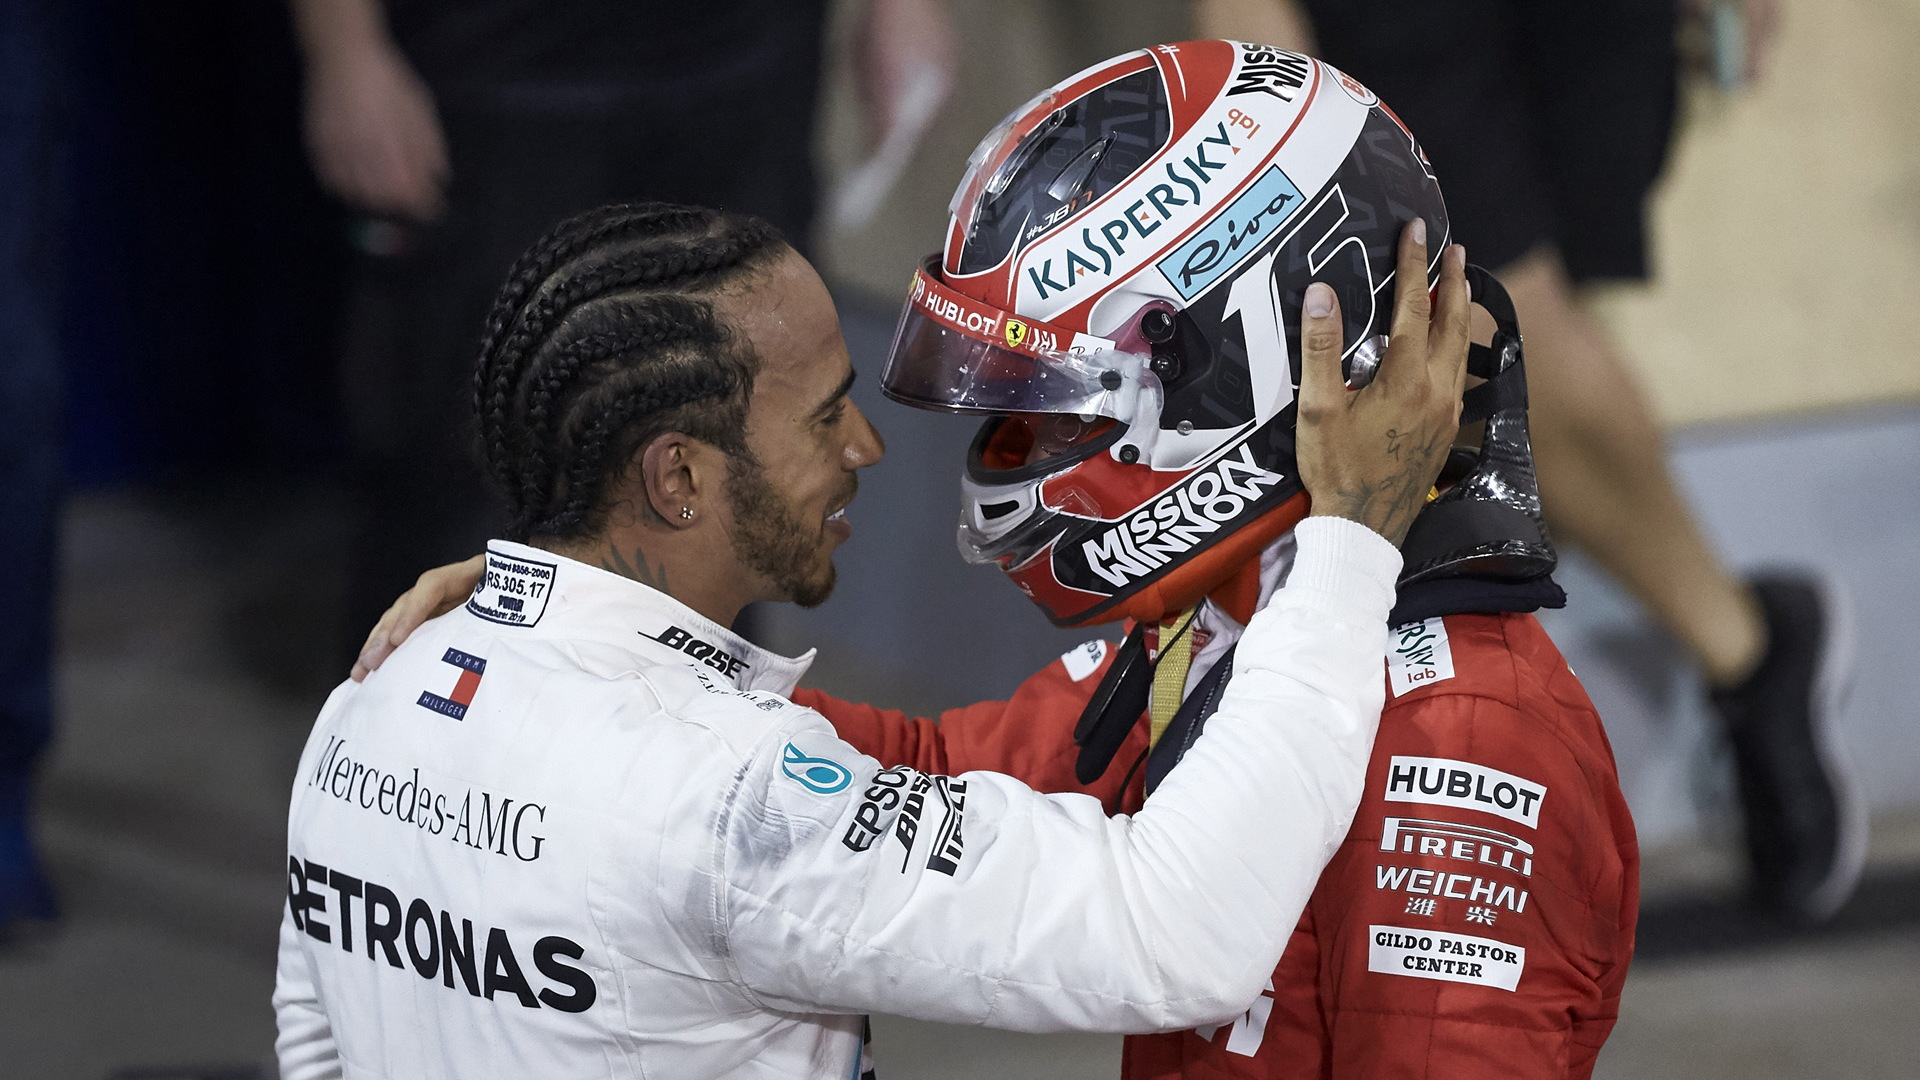 Mercedes-AMG's Lewis Hamilton and Ferrari's Charles Leclerc at the 2019 Formula 1 Bahrain Grand Prix